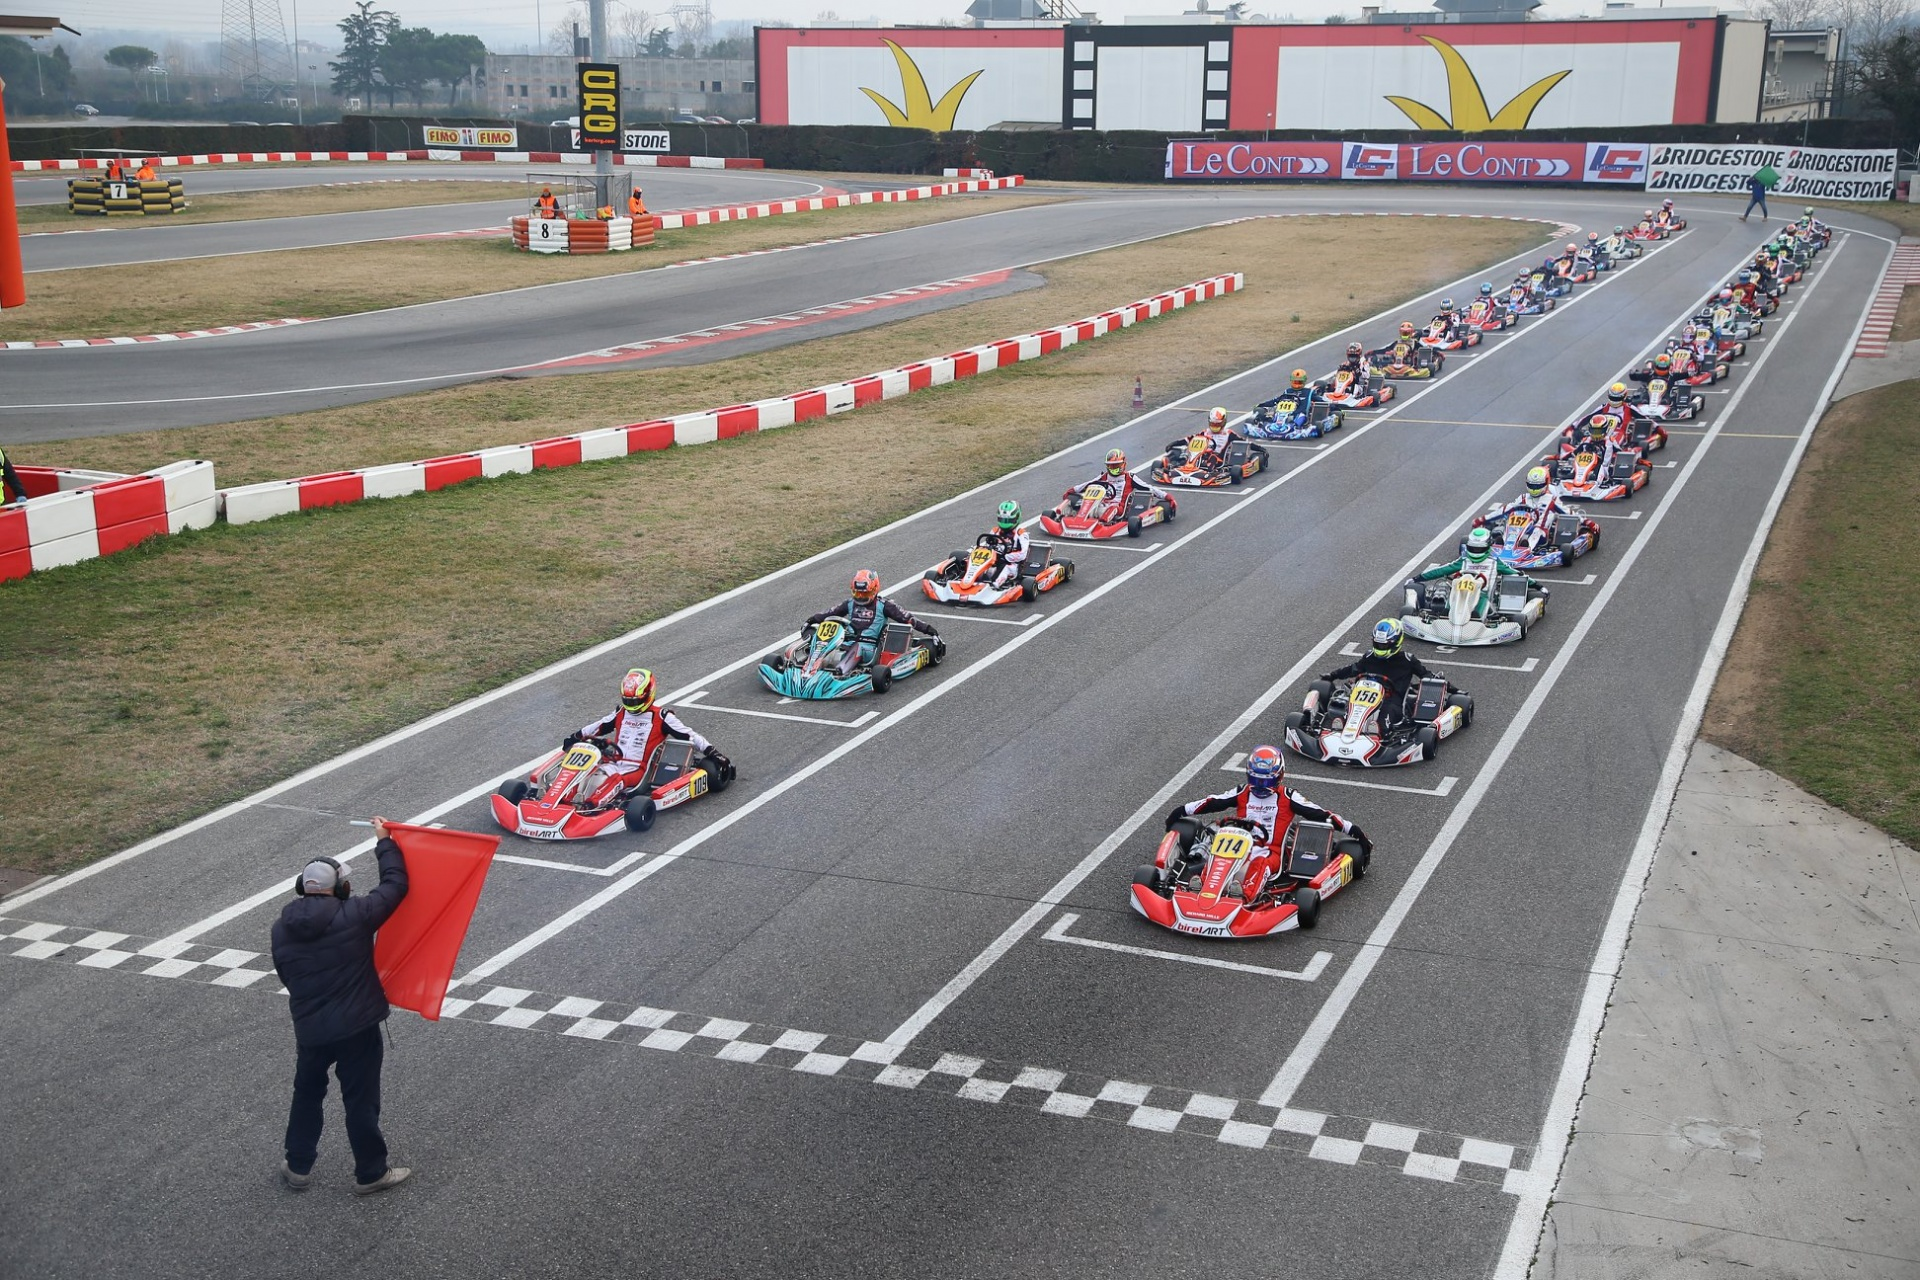 La Super Master Series WSK torna in scena nel weekend